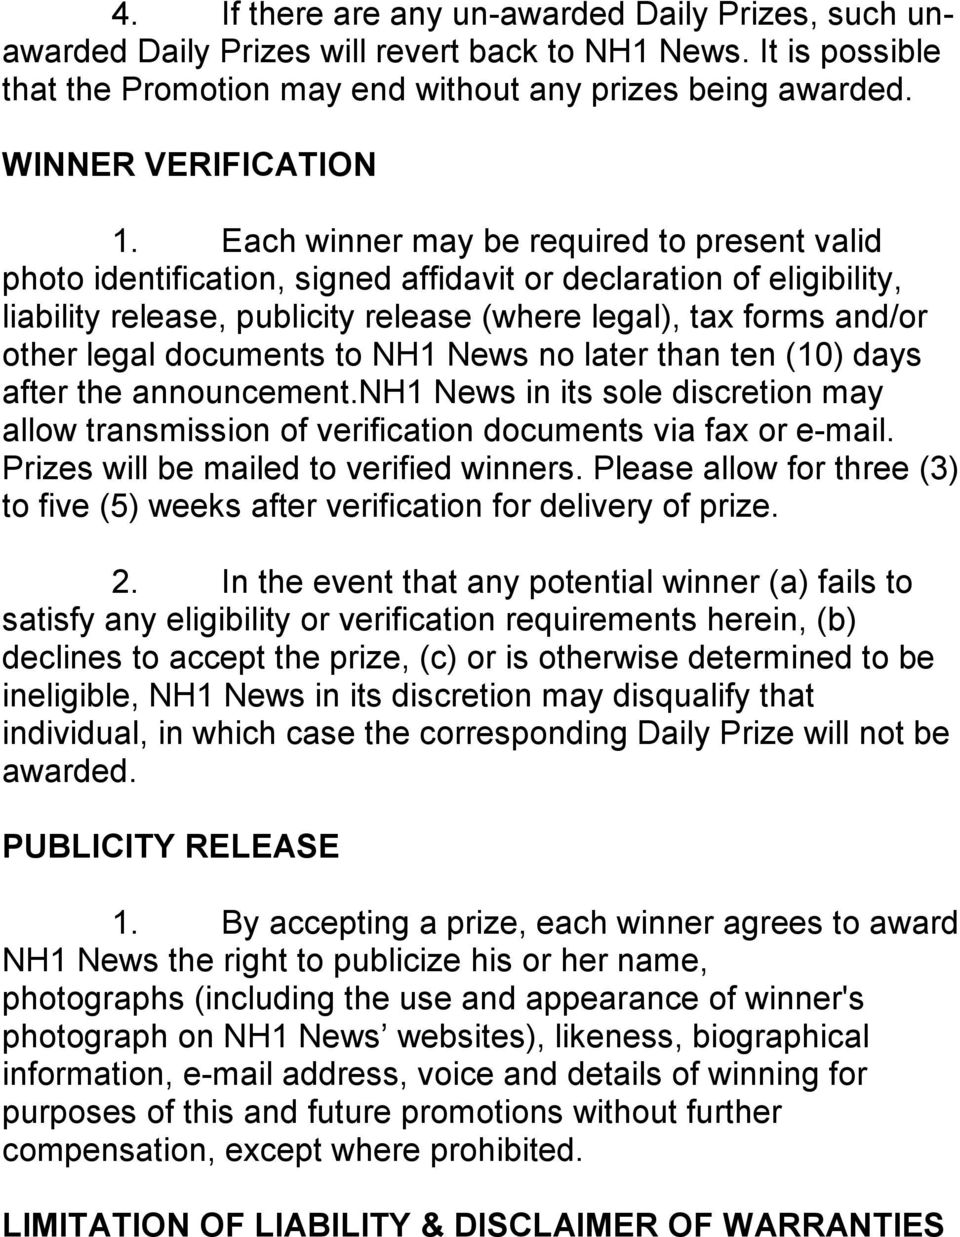 Each winner may be required to present valid photo identification, signed affidavit or declaration of eligibility, liability release, publicity release (where legal), tax forms and/or other legal